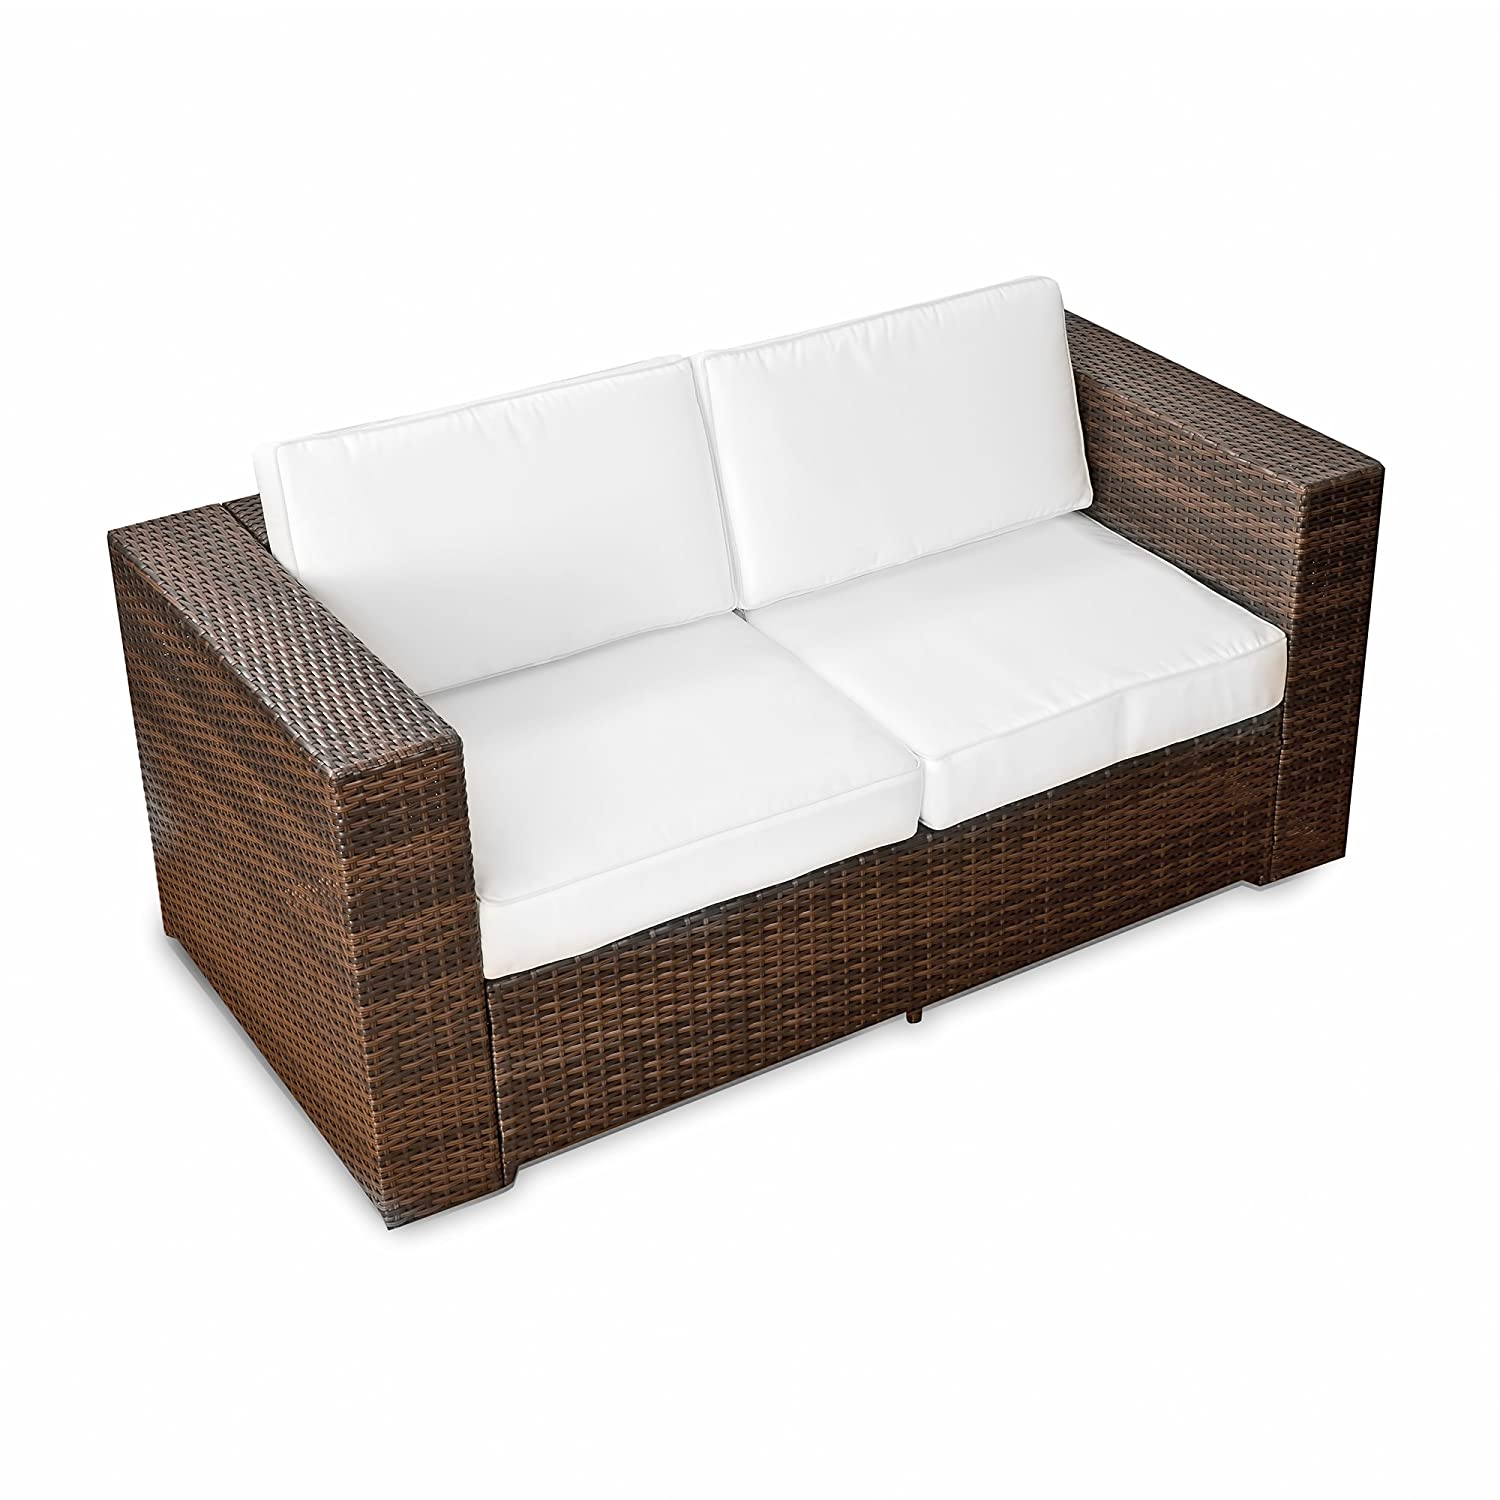 Amazon.de: erweiterbares 15tlg. XXXL Polyrattan Lounge Sofa Set ...